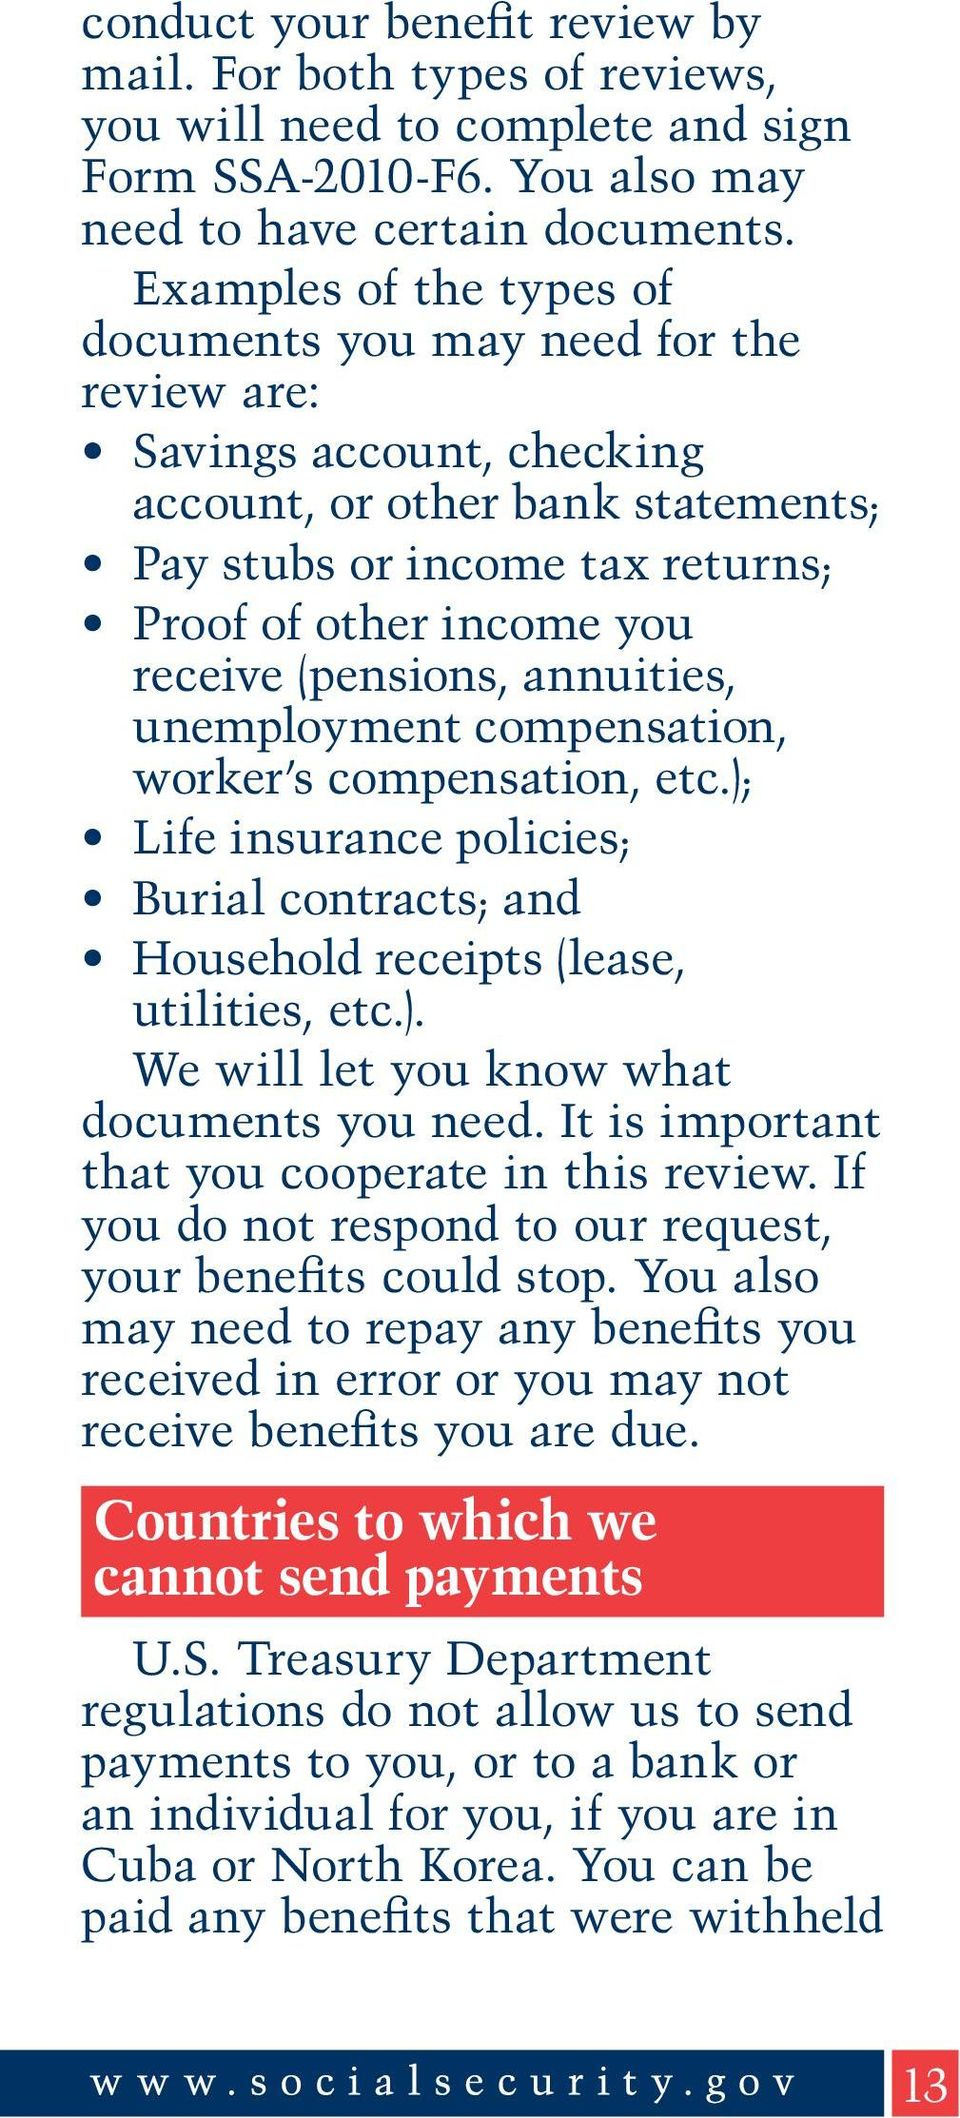 (pensions, annuities, unemployment compensation, worker s compensation, etc.); Life insurance policies; Burial contracts; and Household receipts (lease, utilities, etc.). We will let you know what documents you need.